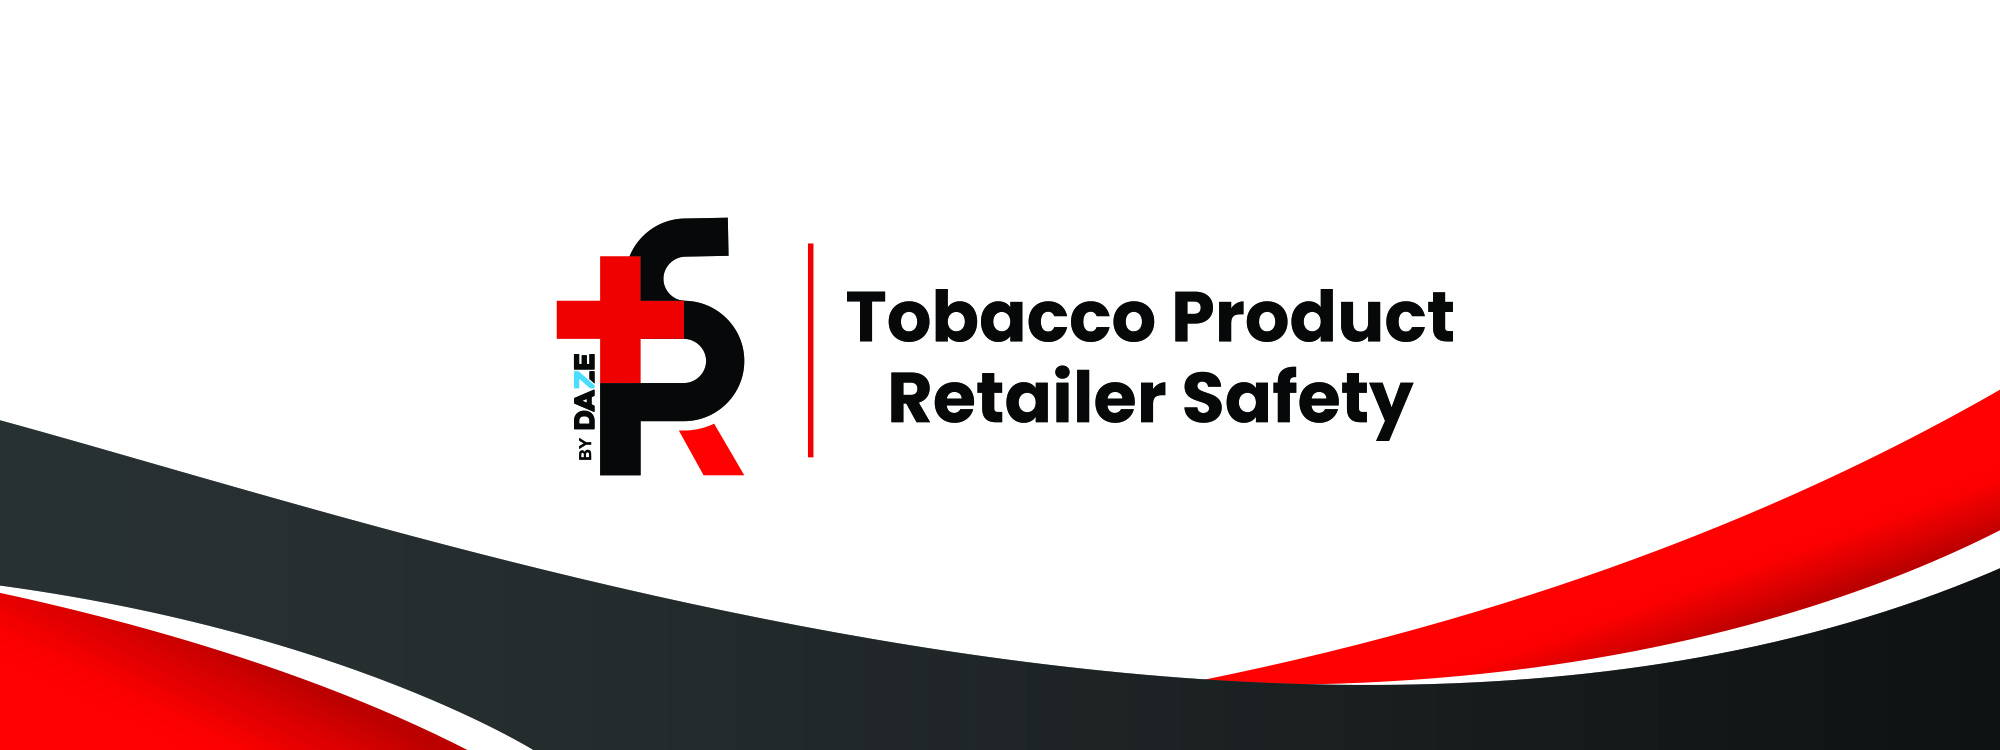 Tobacco product retailer safety white banner 7 daze